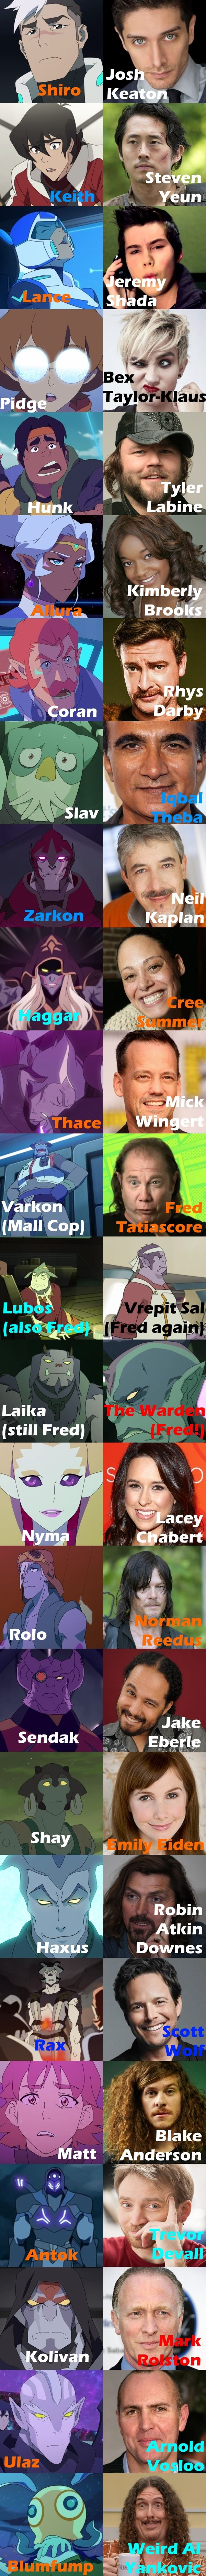 Voltron Voice Actors matched with their character << except for the fact that the picture of Mick Wingert is actually a pic of Dee Bradley Baker =P Also, I love that Fred voices so many characters in here